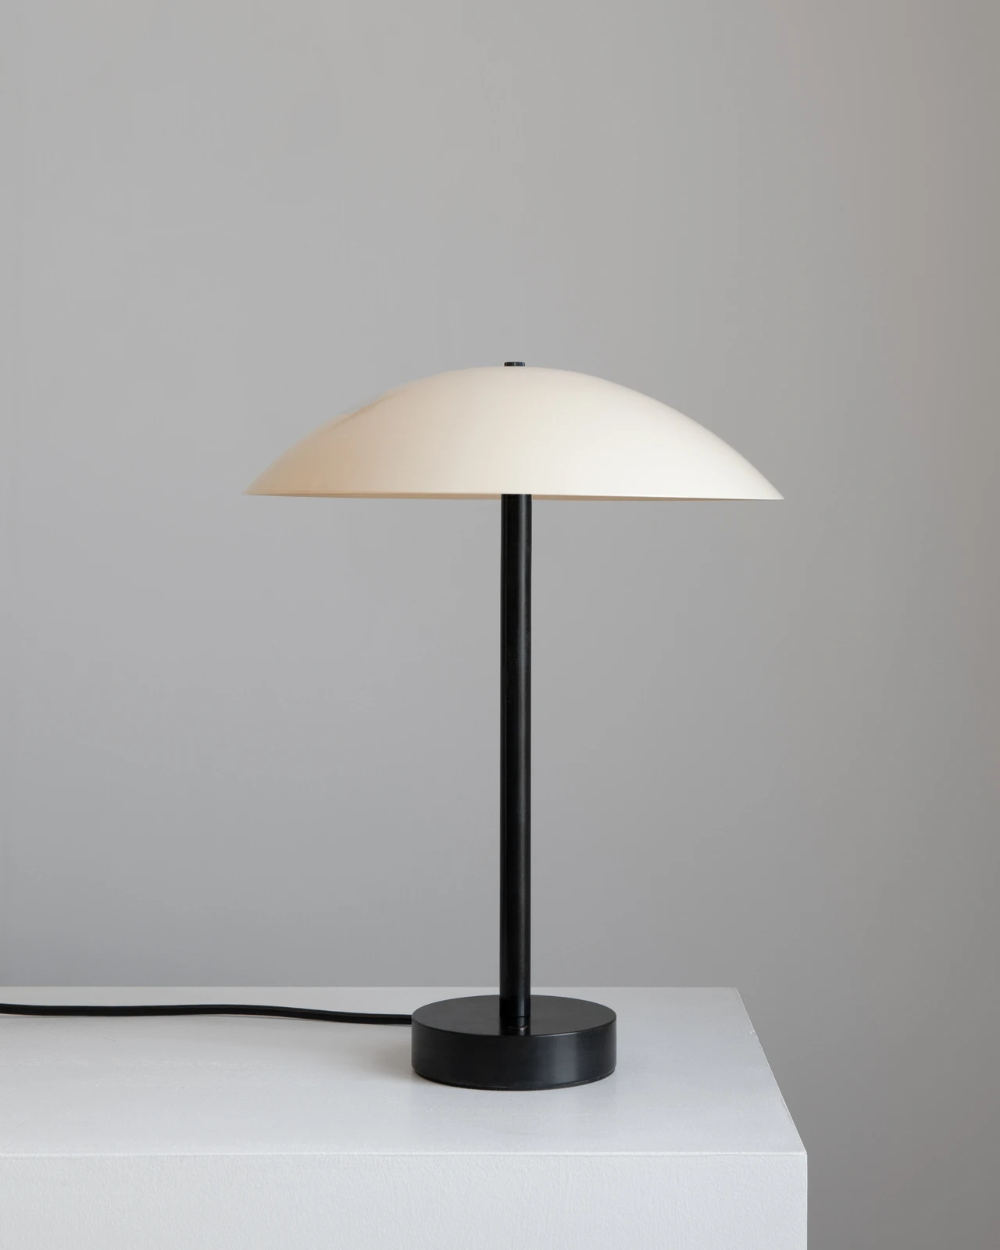 Arundel Table Lamp in 2020 Table lamp, Lamp, Table